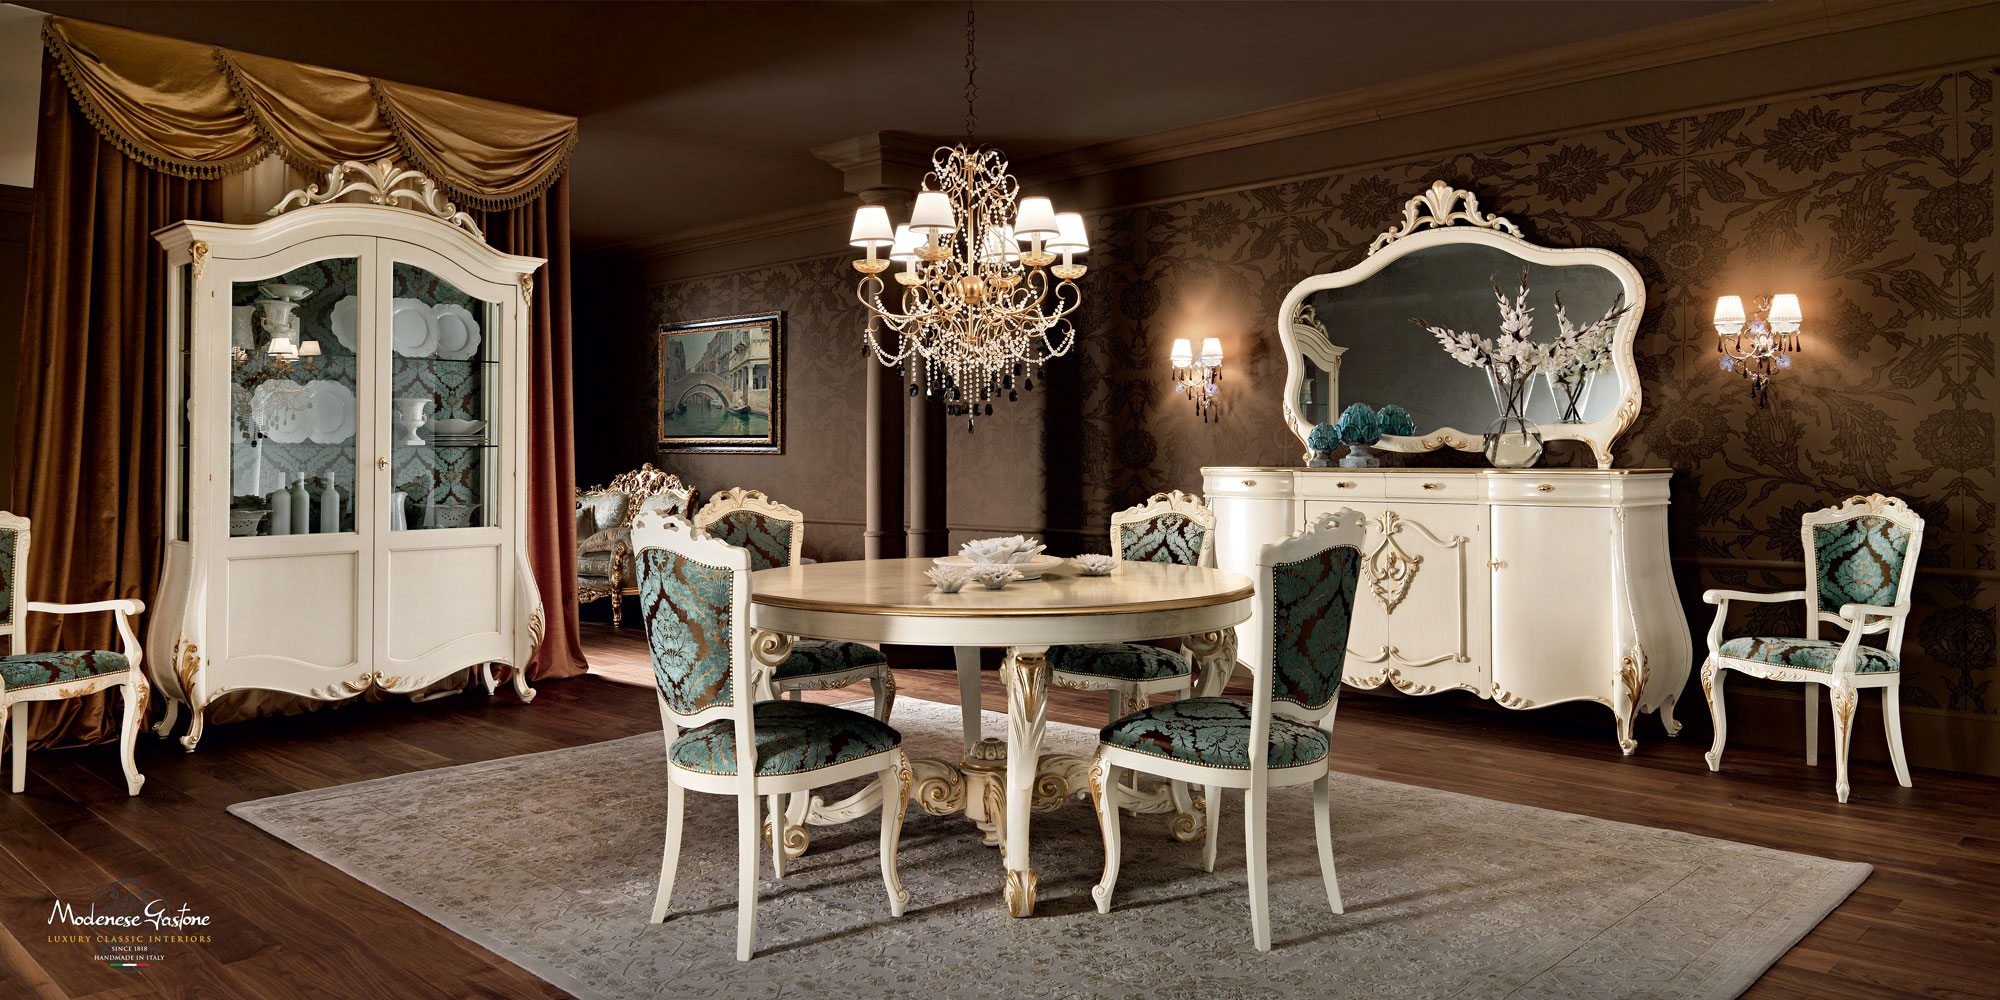 Dining-room-luxury-Italian-furnishings-design-Villa-Venezia-collection-Modenese-Gastone